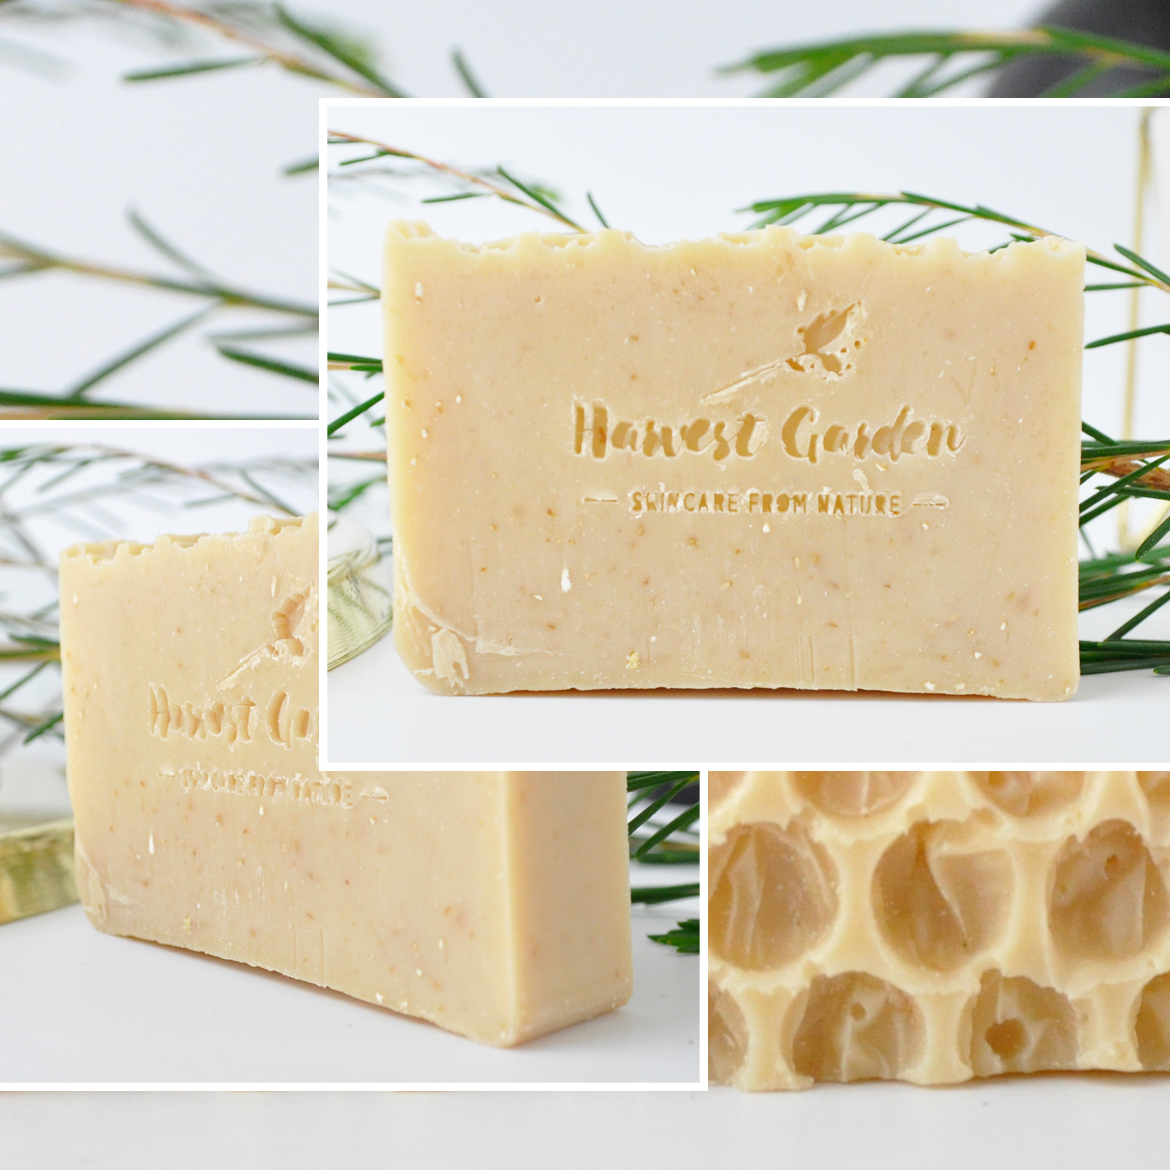 Harvest Garden Natural Handcrafted Soaps Honey + Oatmeal soap